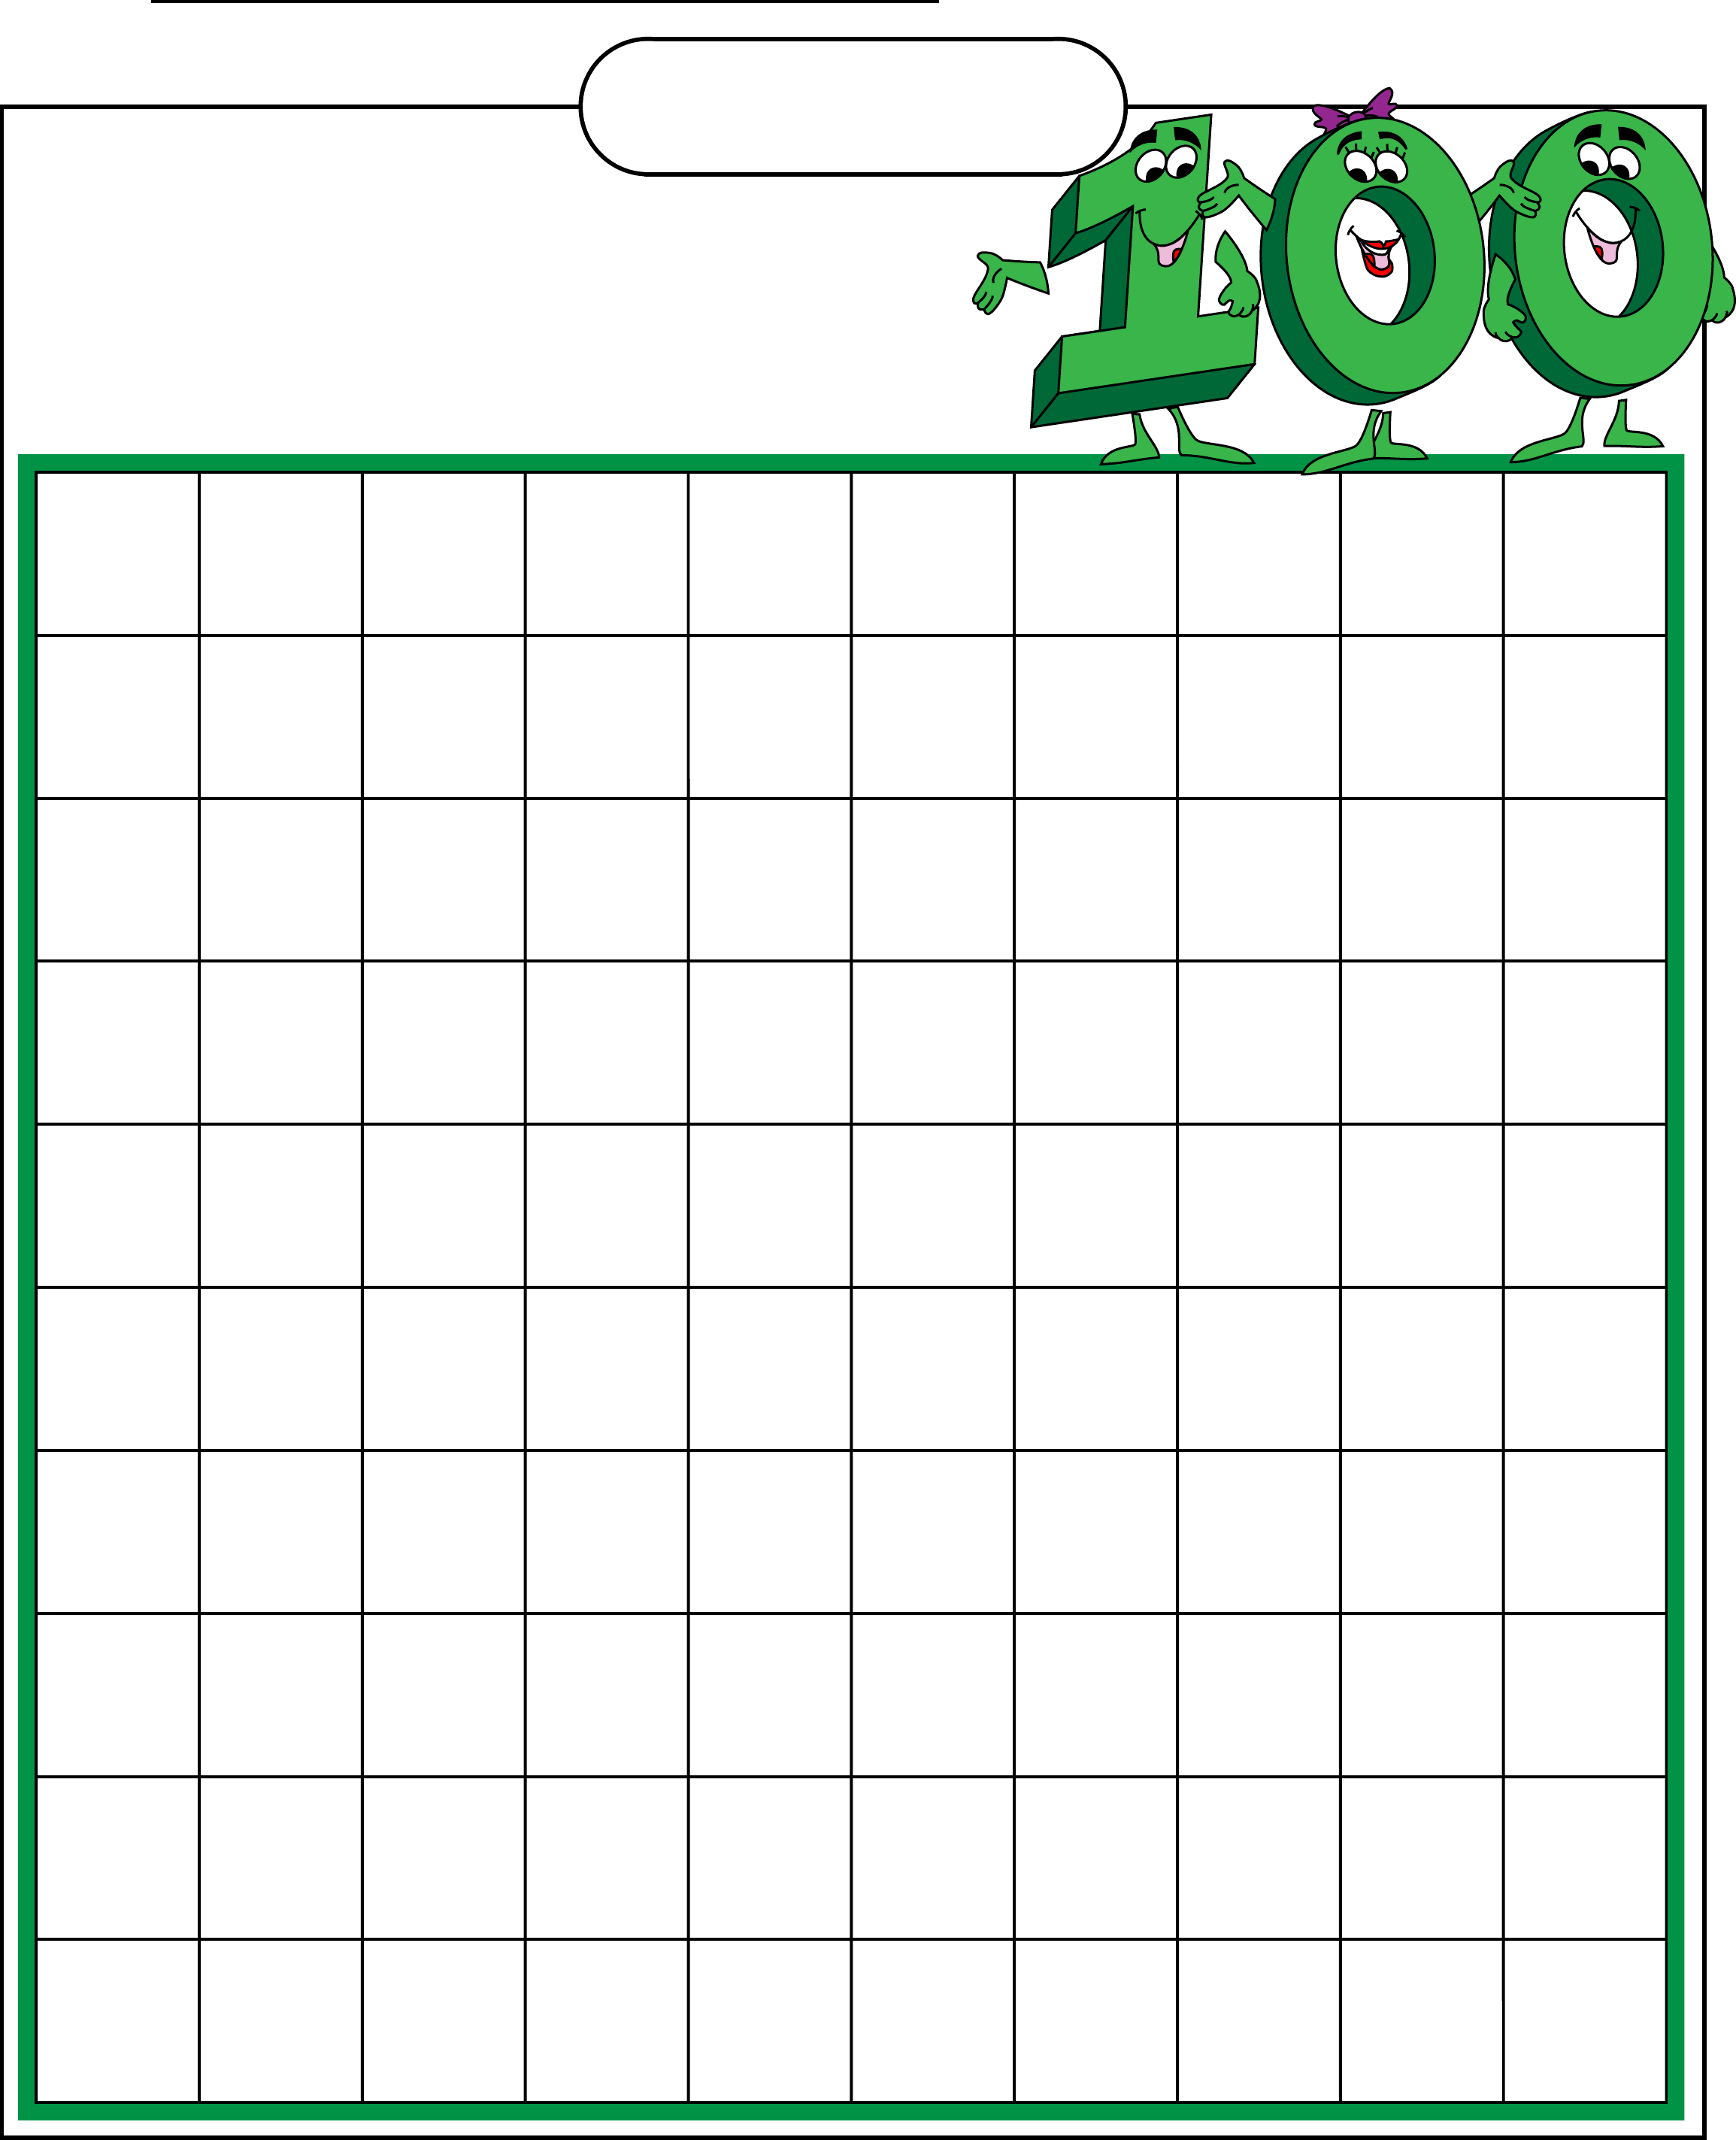 Com 100 chart 1plete the 100 chart by filling in the empty boxes